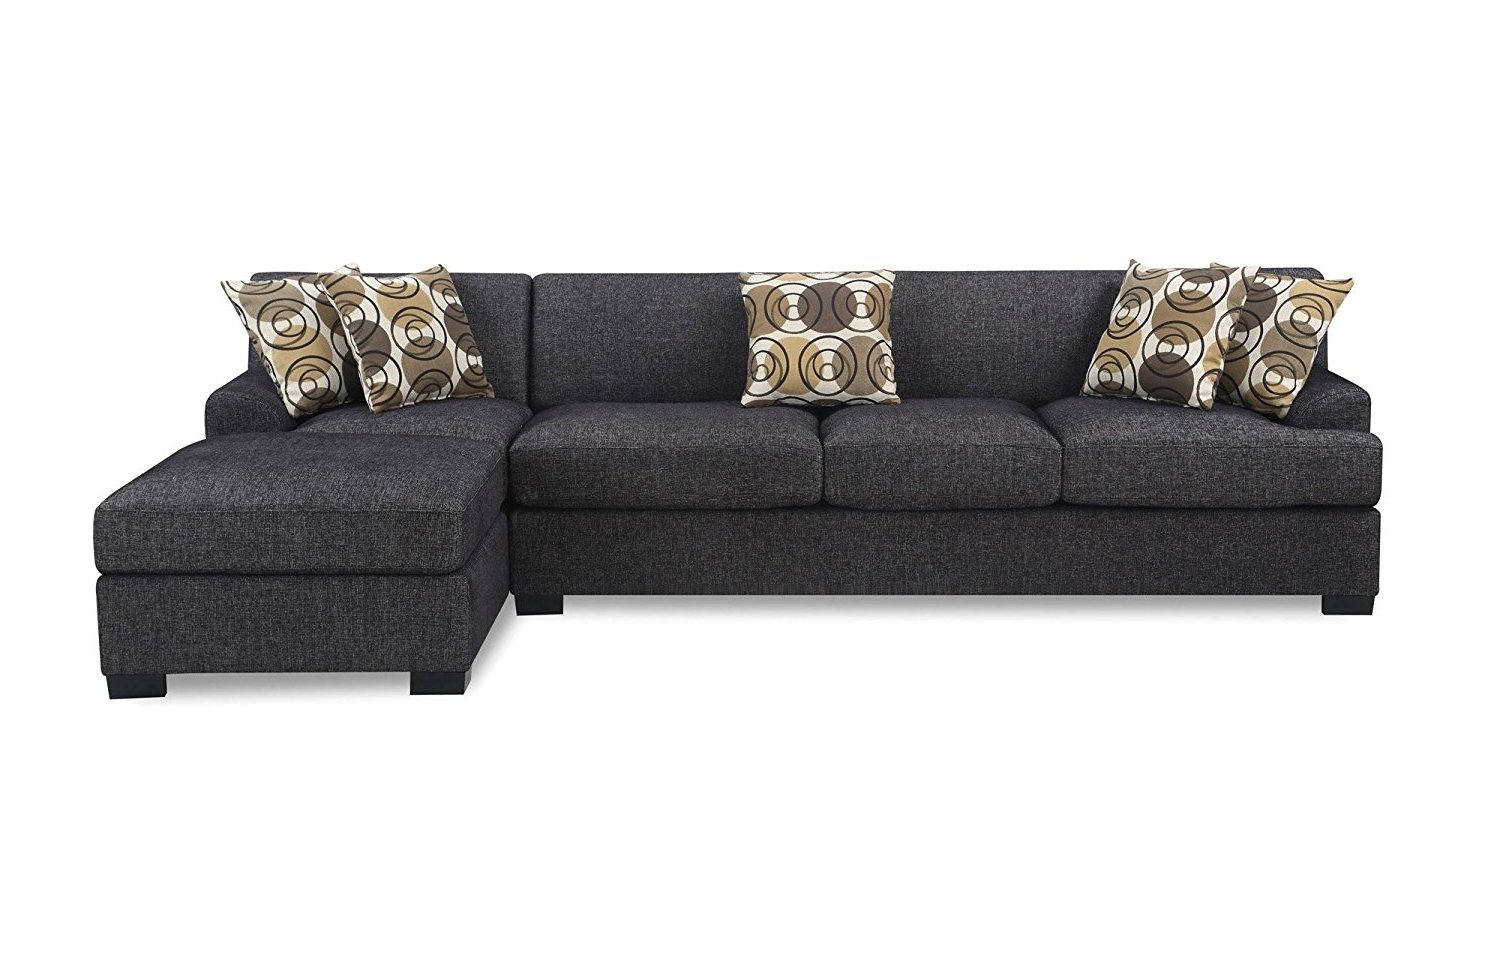 Couches With Chaise For Popular Amazon: Bobkona Poundex Benford Collection Faux Linen Chaise (View 4 of 15)